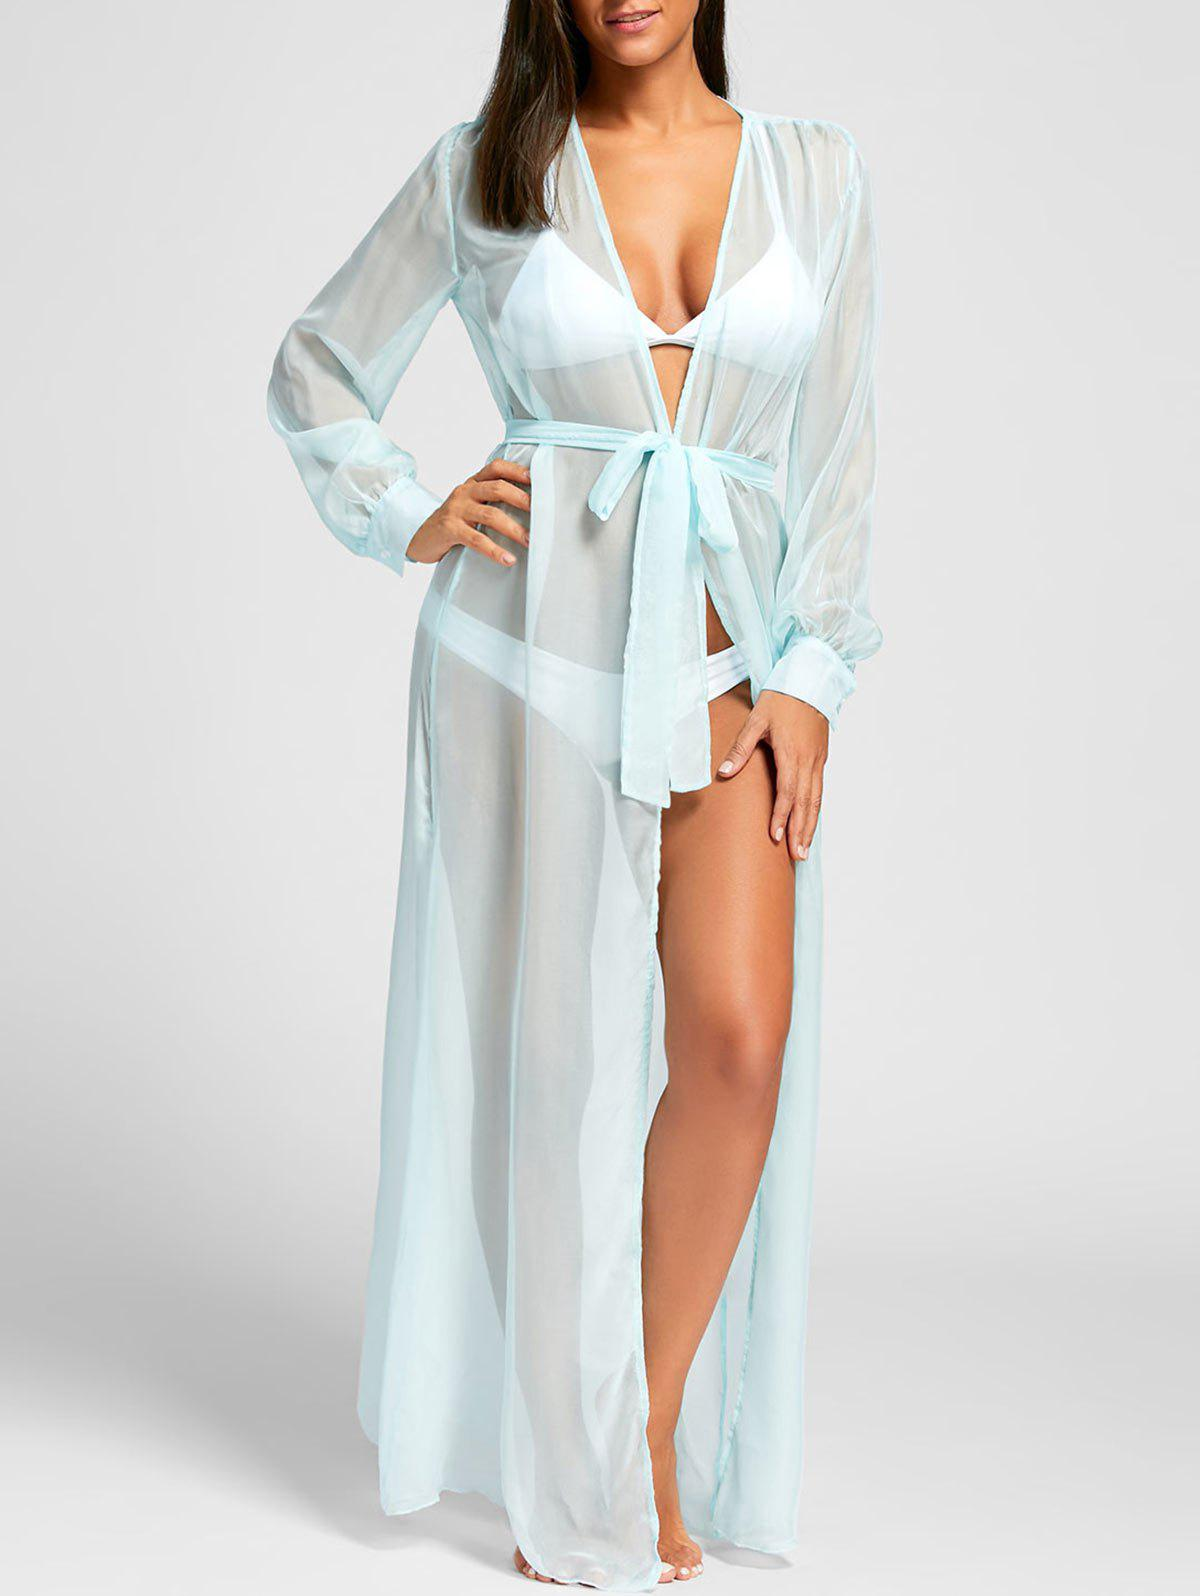 Flowy Maxi Cover Up Wrap Dress - LIGHT BLUE XL